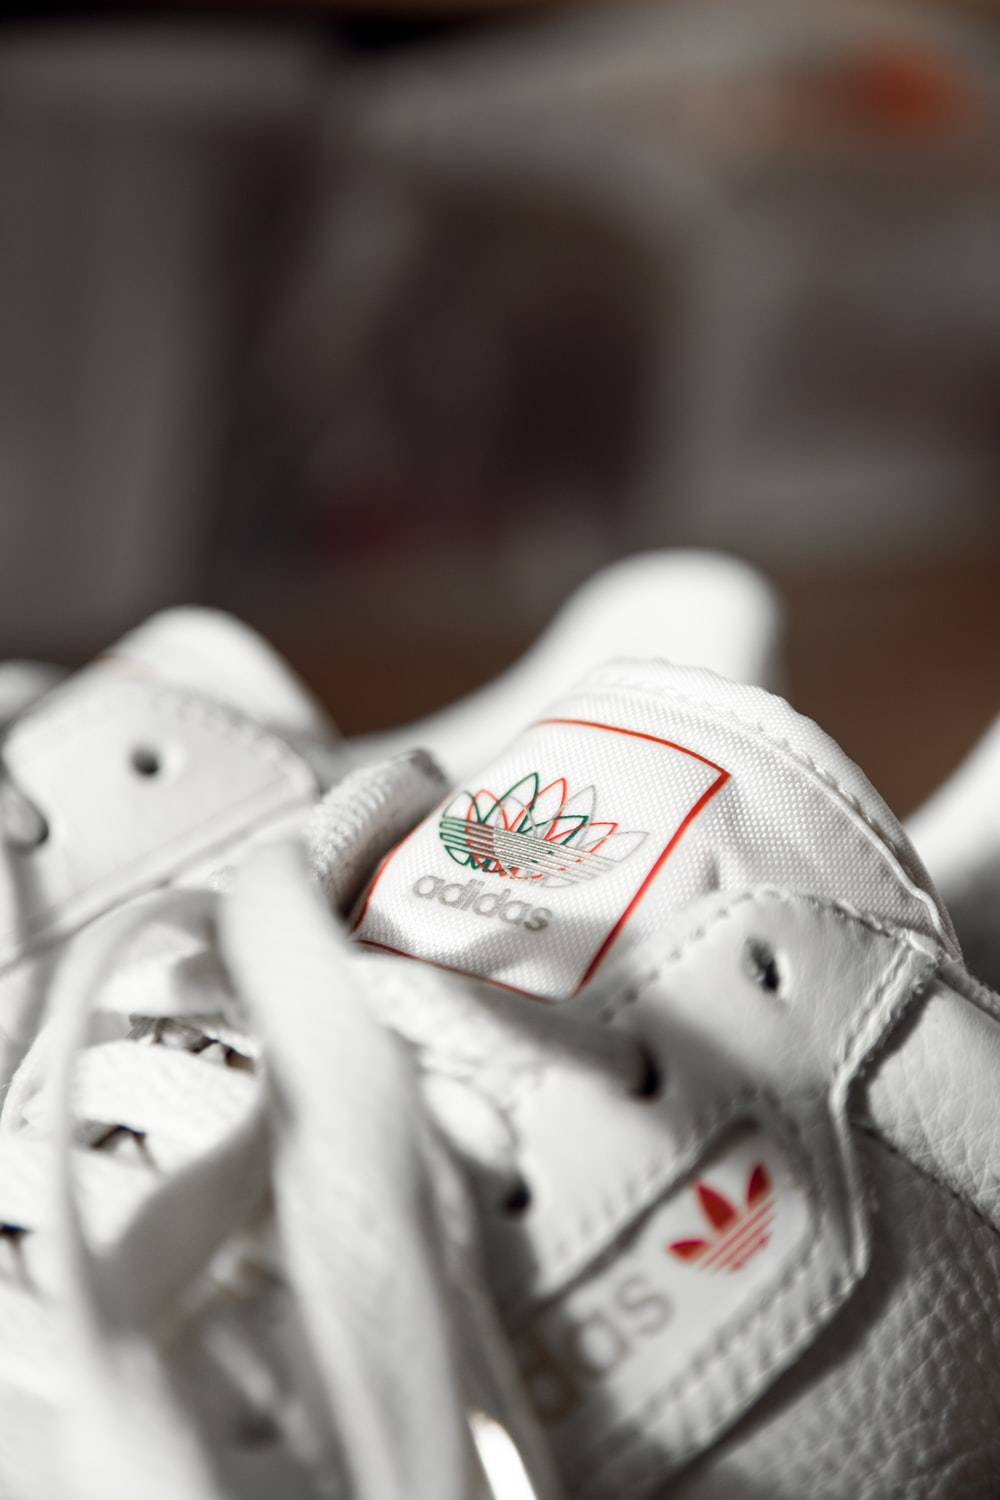 closeup photo and seletive focus photography of Adidas sneakers